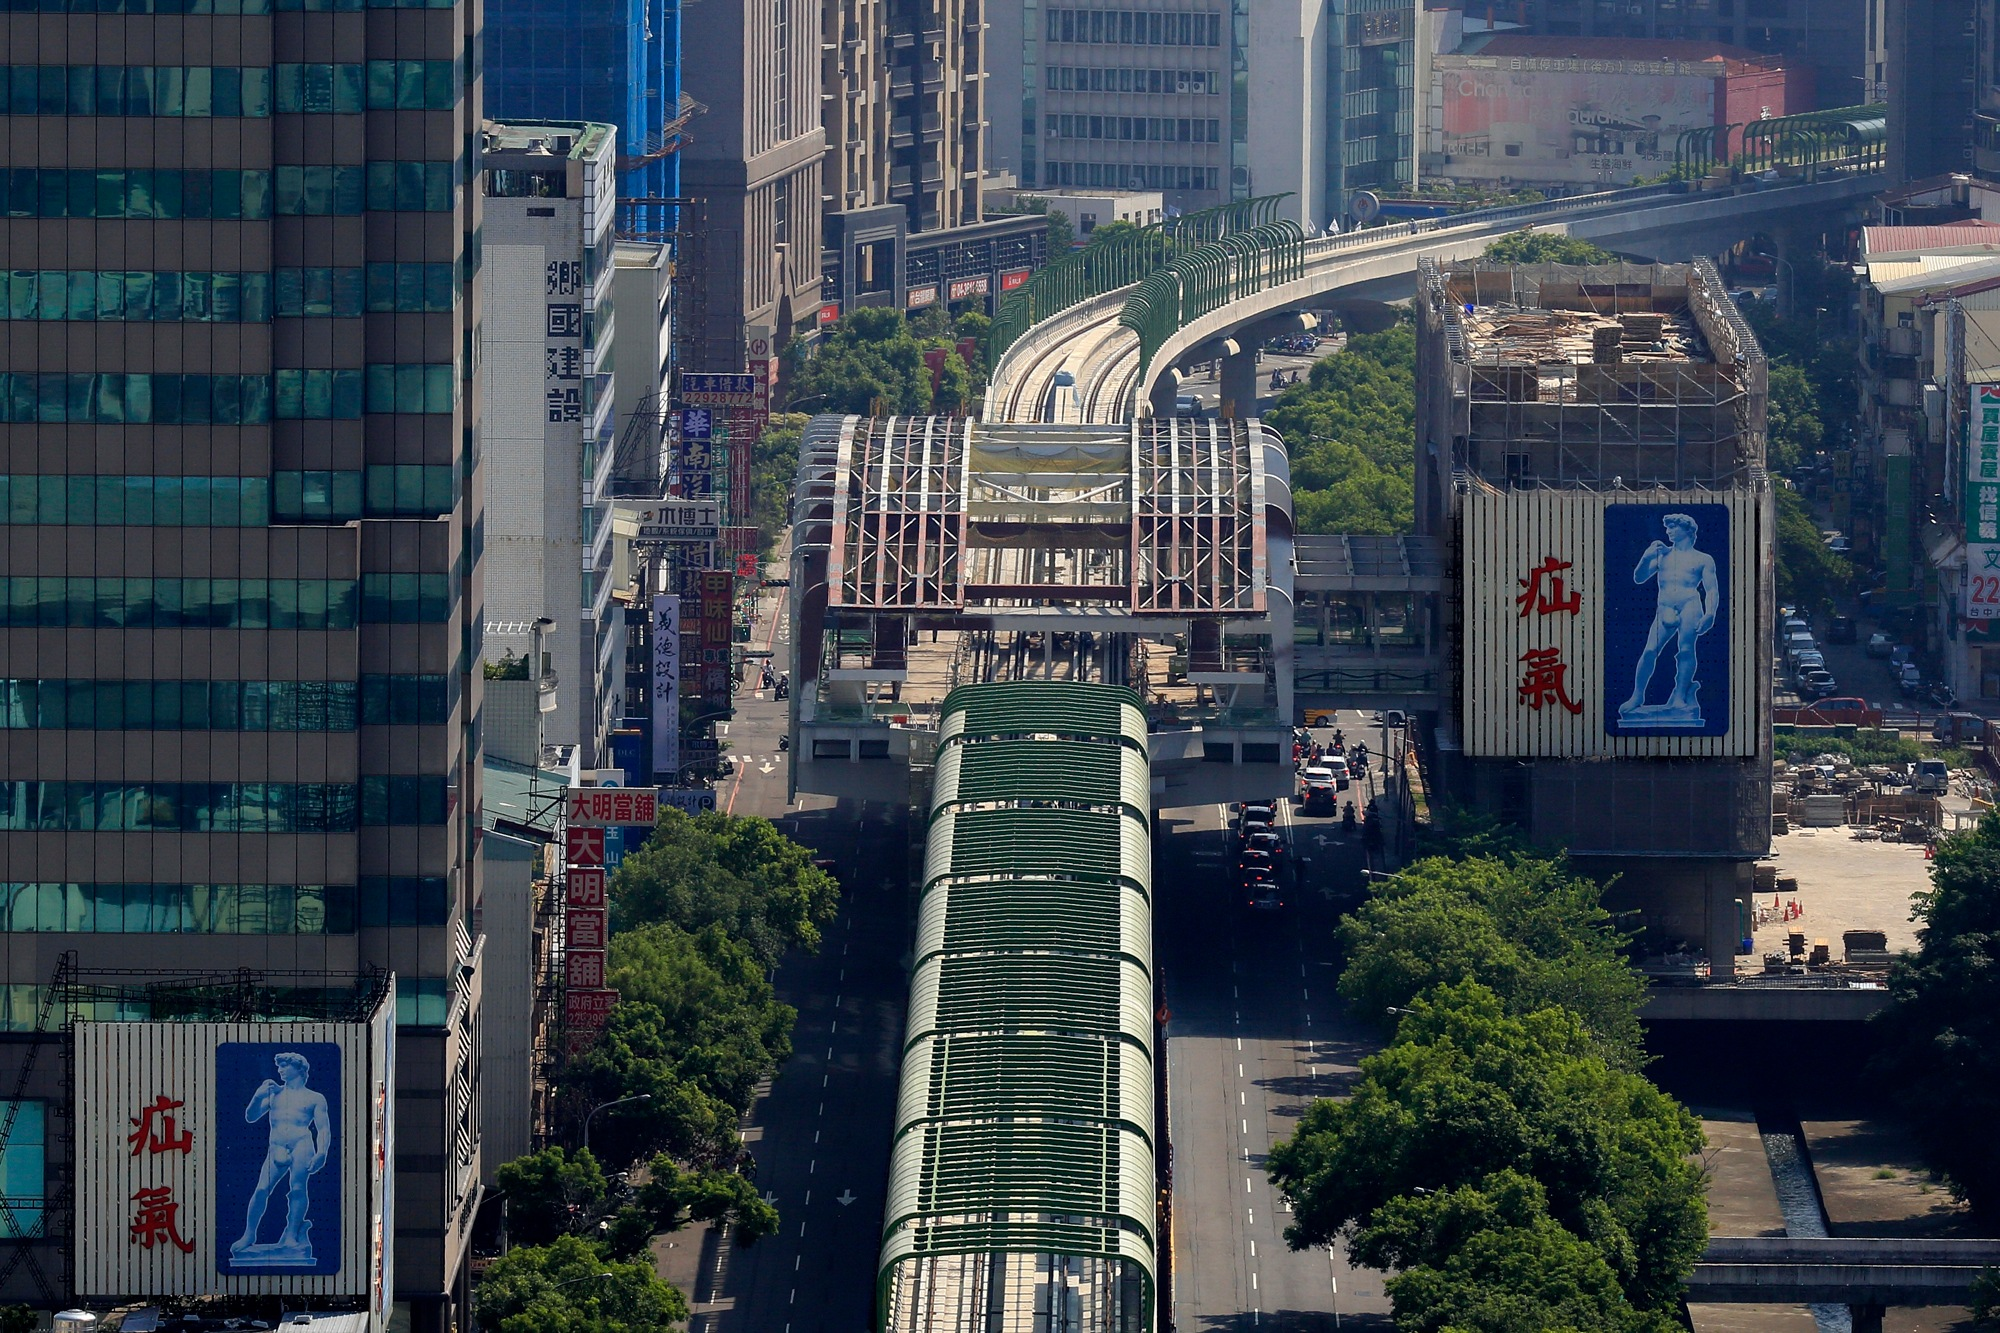 Rapid transit system by chaoyang chan